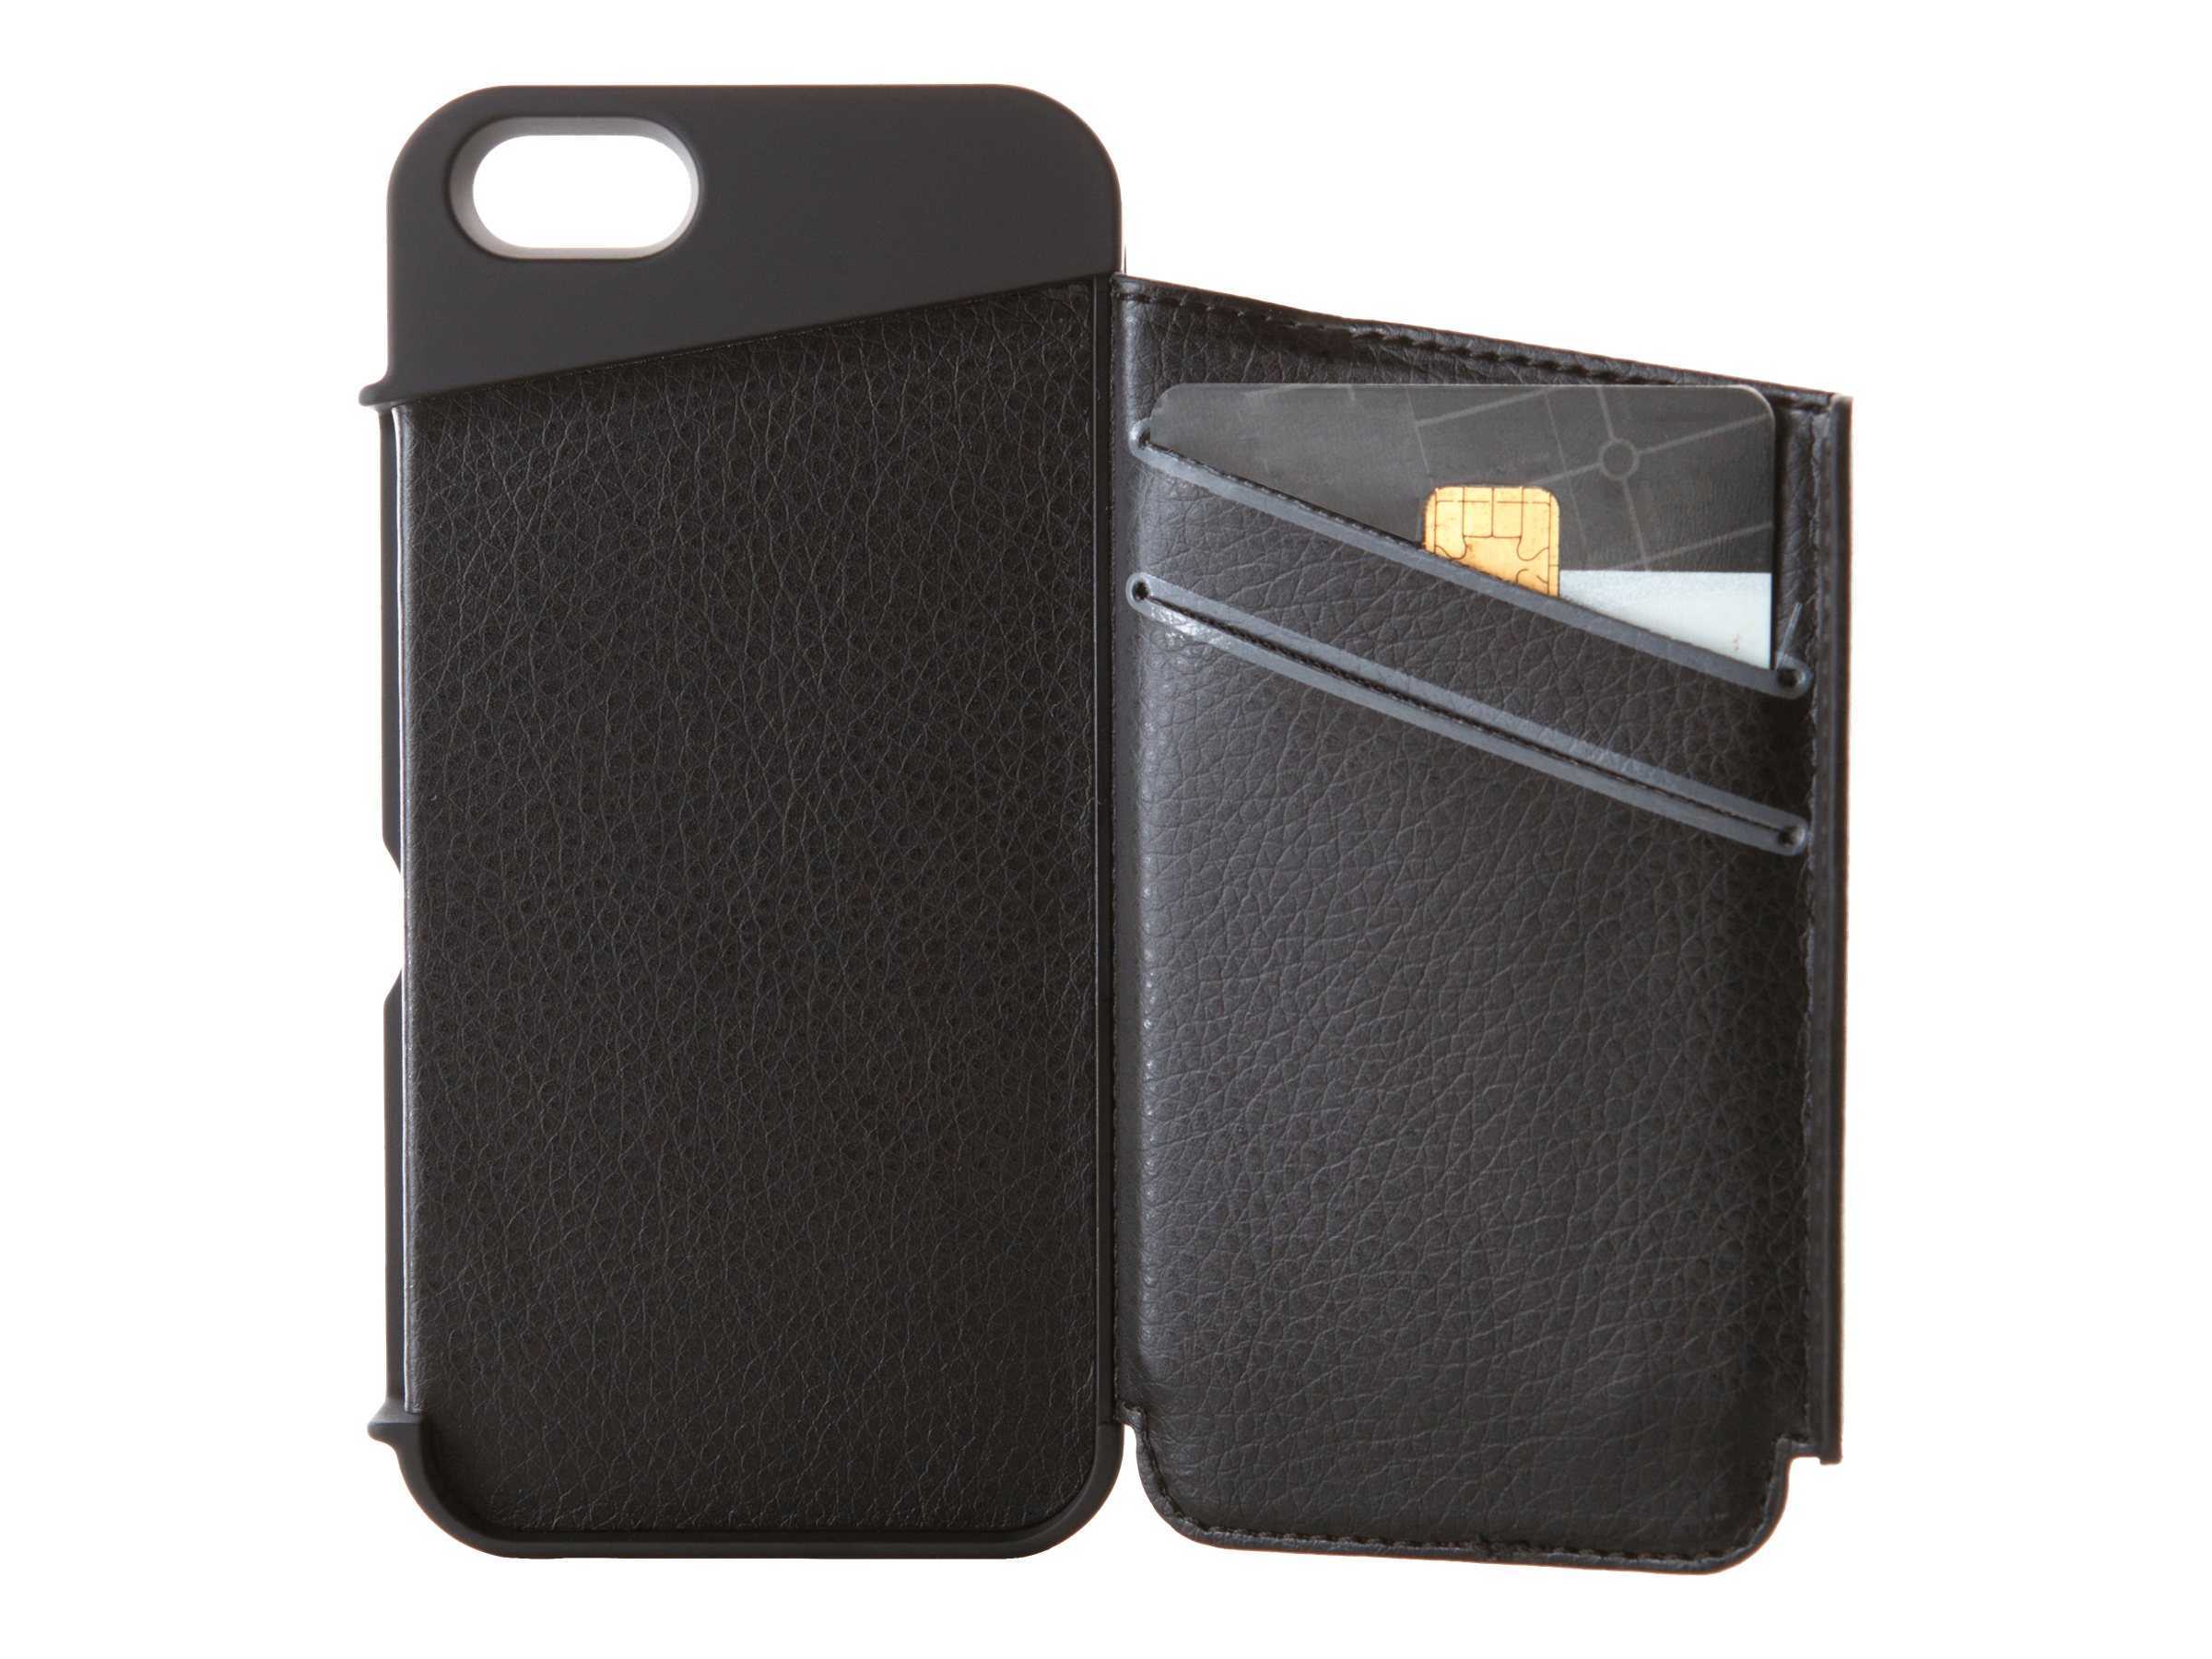 Targus Wallet Case for iPhone 5, Black